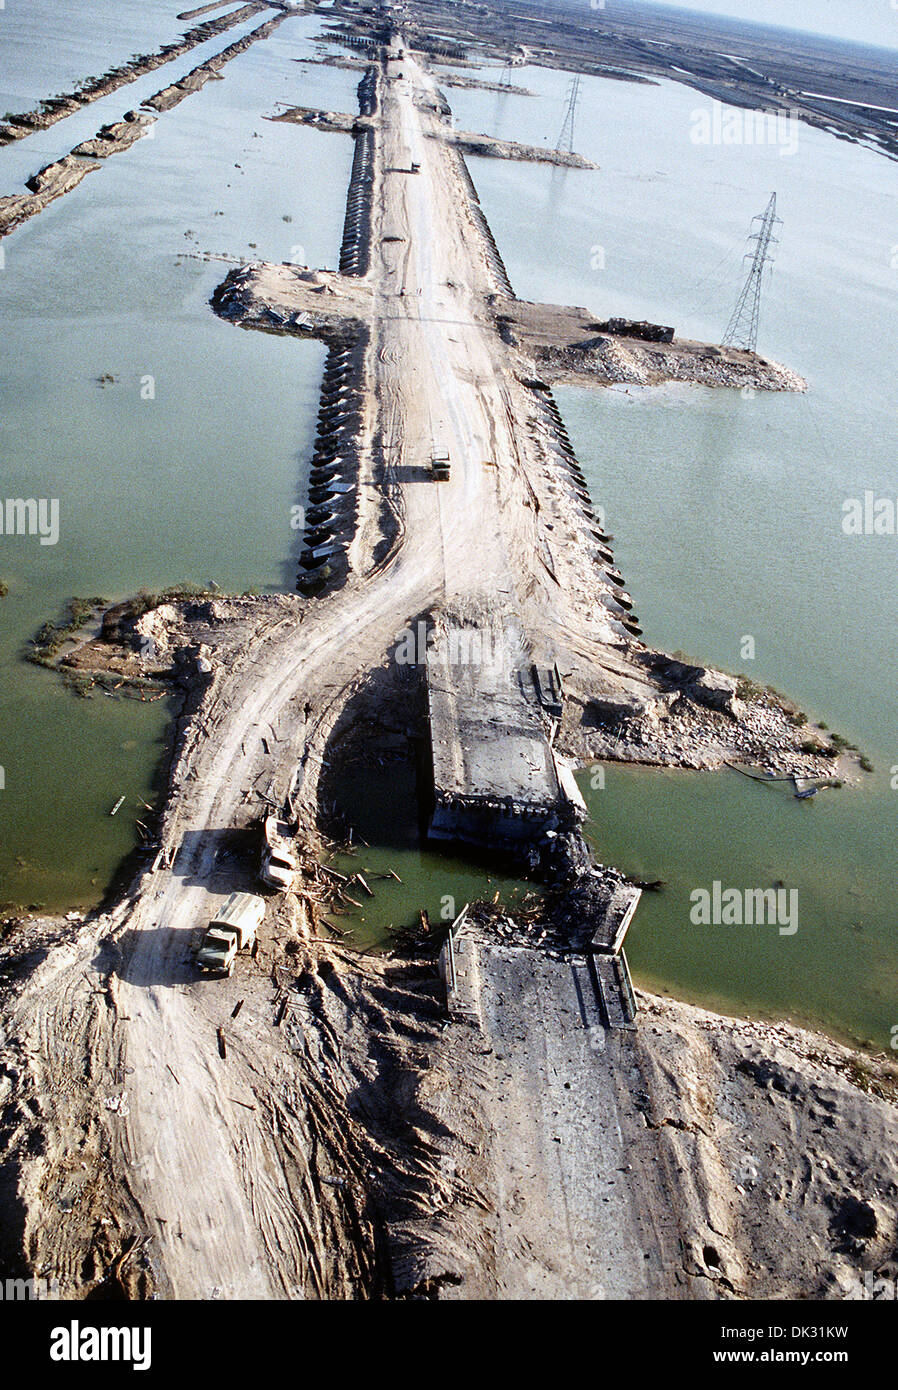 Aerial view of a demolished section of bridge across the Euphrates River after being hit in an Allied bombing attack during Operation Desert Storm March 4, 1991in Balad, Iraq. - Stock Image